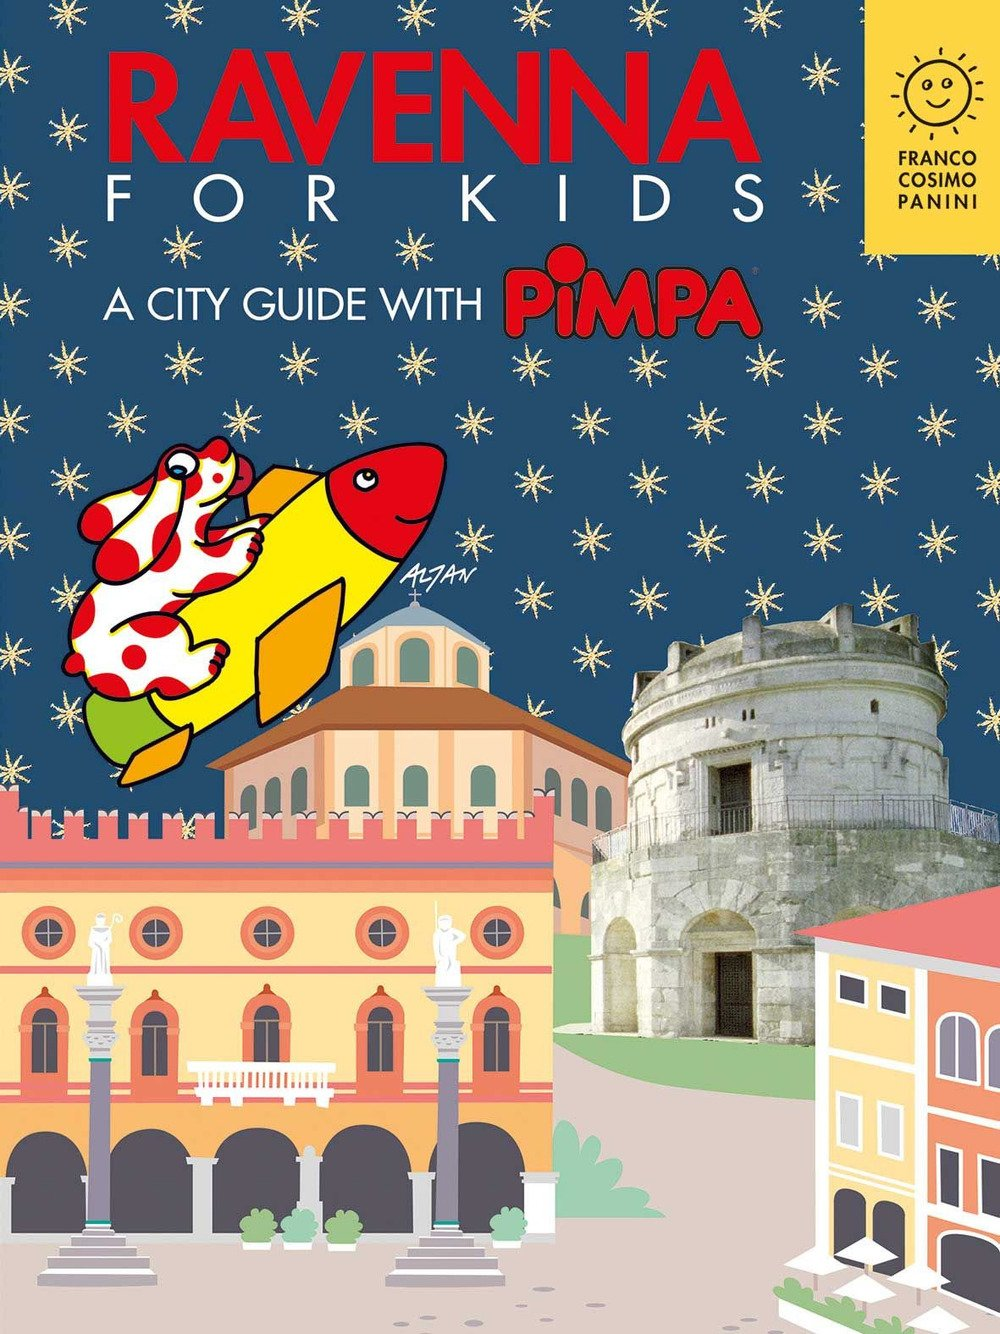 Ravenna for kids. A city guide with Pimpa